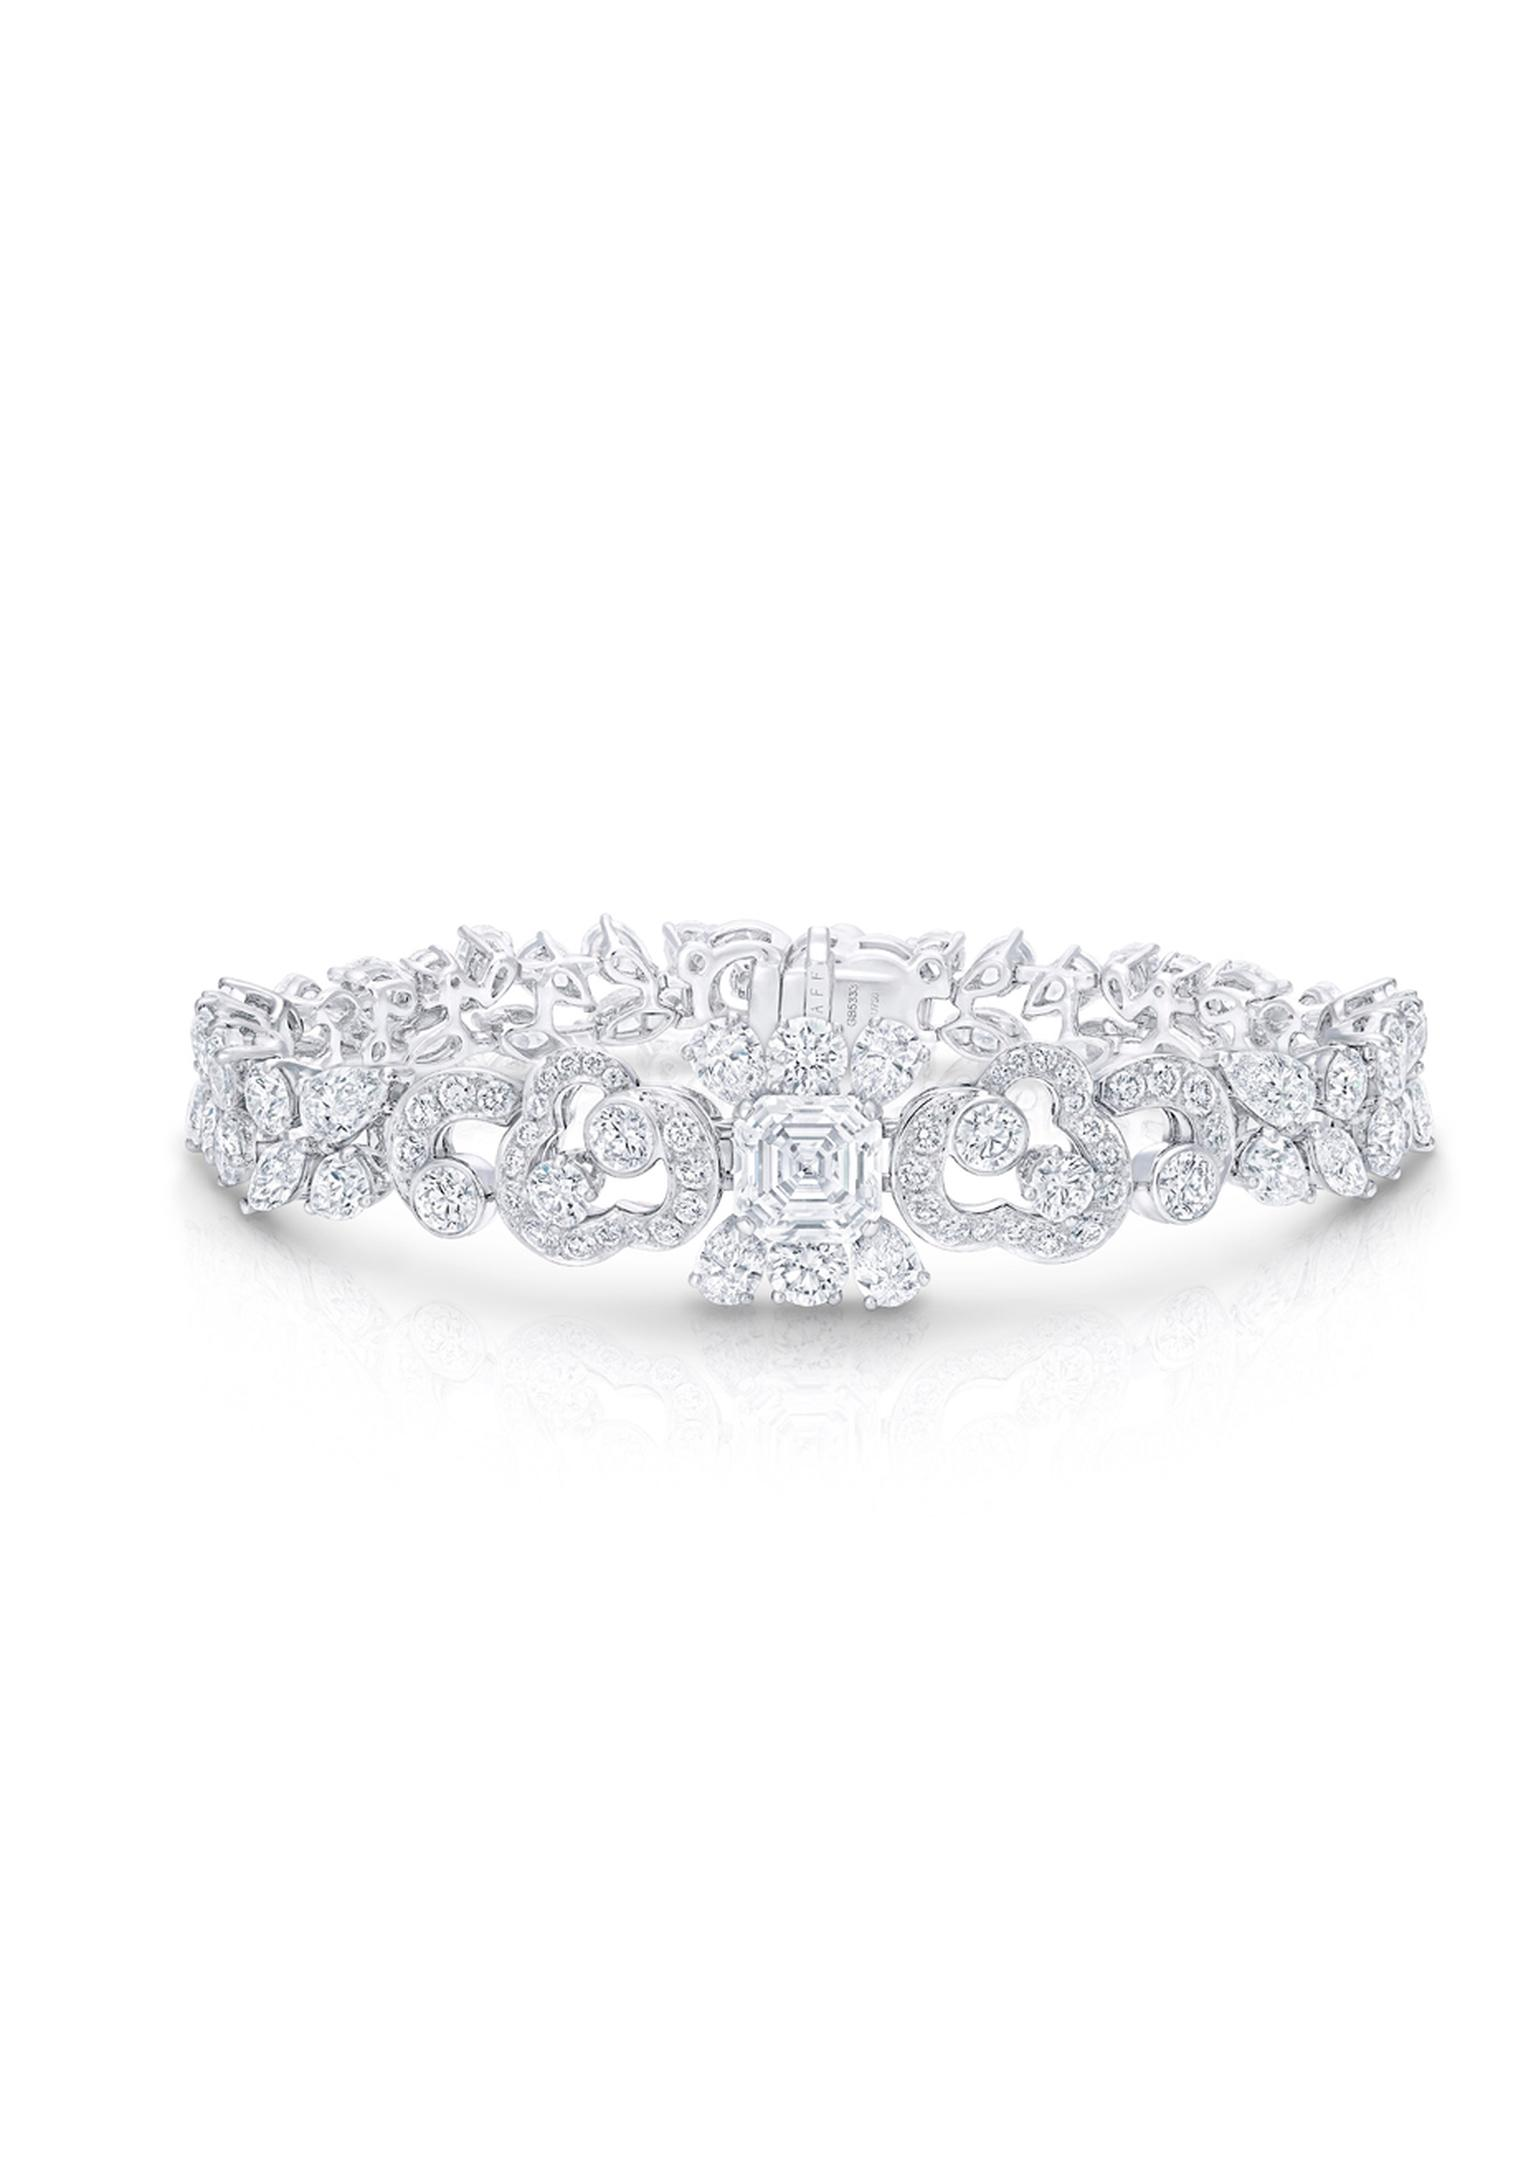 Graff Nuage collection diamond bracelet.